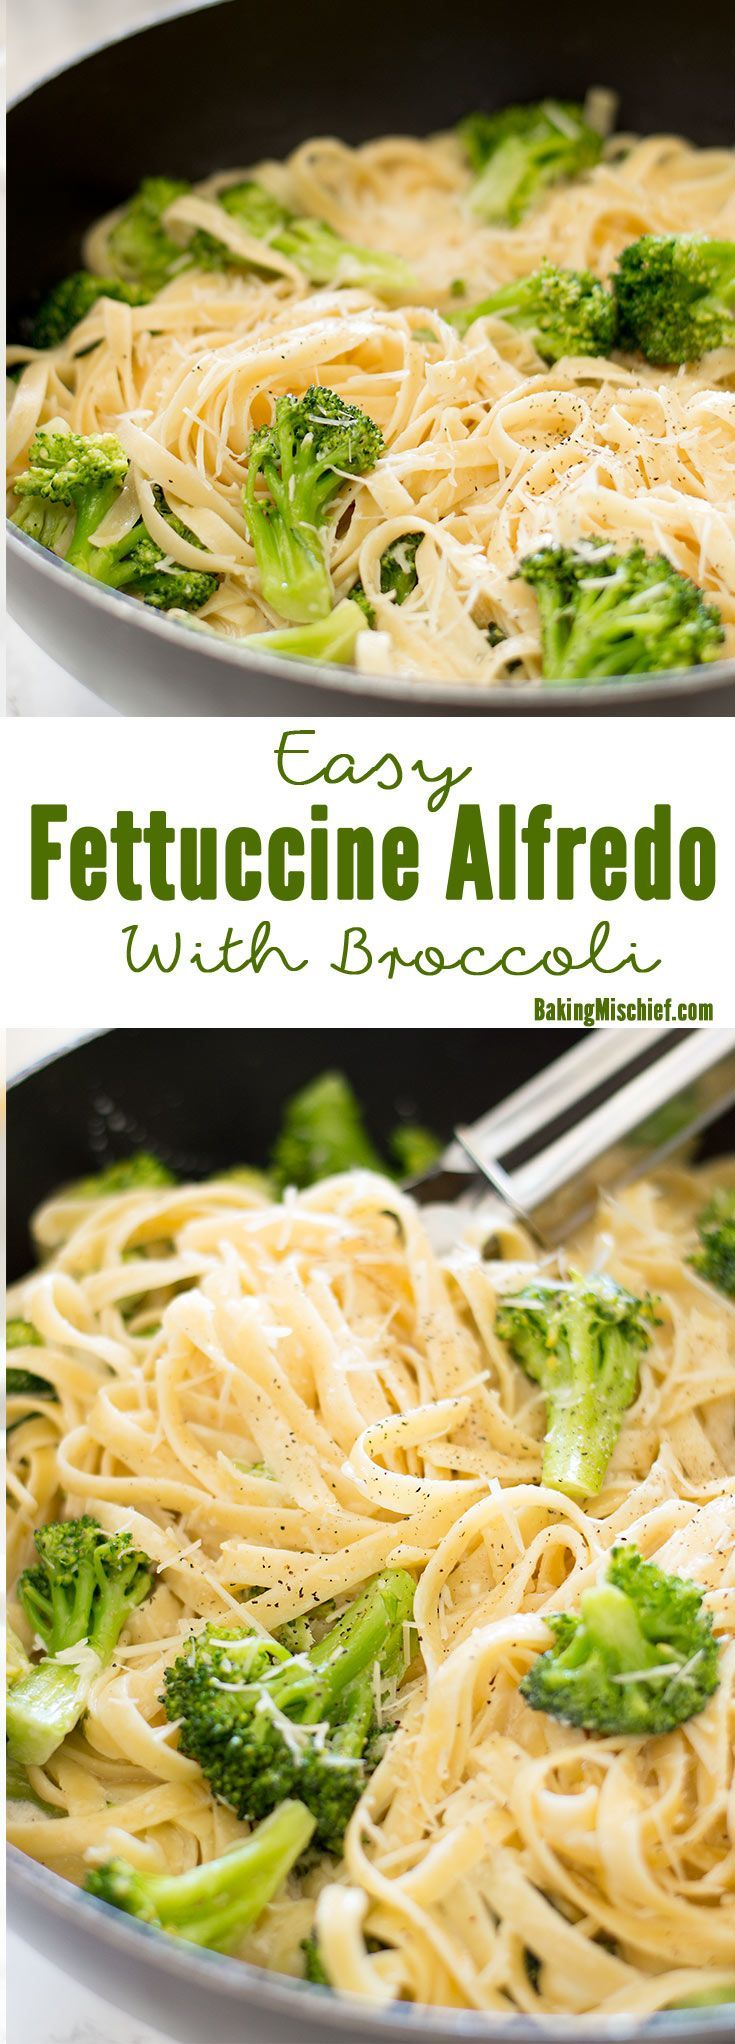 A quick and easy vegetarian dish for busy Meatless Mondays, full of broccoli and cheesy Alfredo goodness! Recipe includes nutritional information, recipe for two and make-ahead instructions. From BakingMischief.com